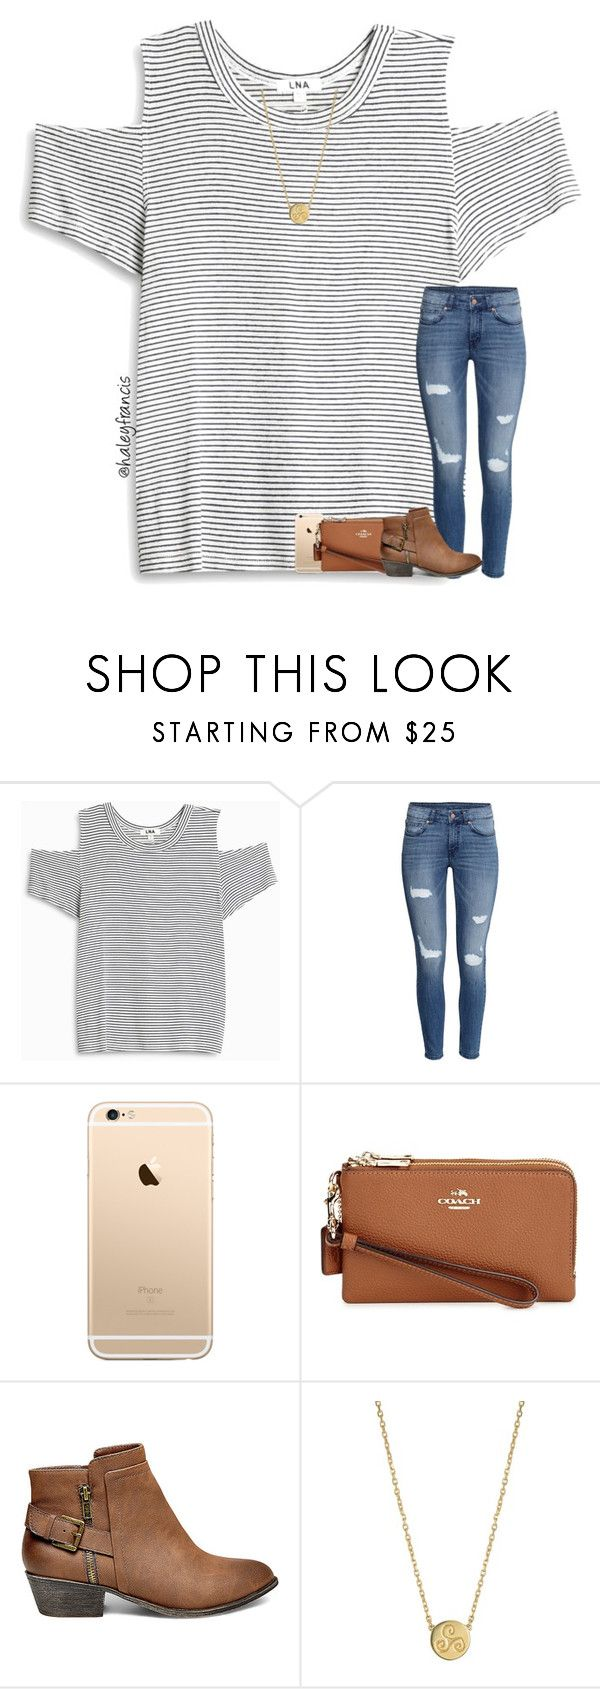 """Going to play tennis today "" by haleyfrancis ❤ liked on Polyvore featuring LnA, H&M, Coach, Steve Madden and Liwu Jewellery"